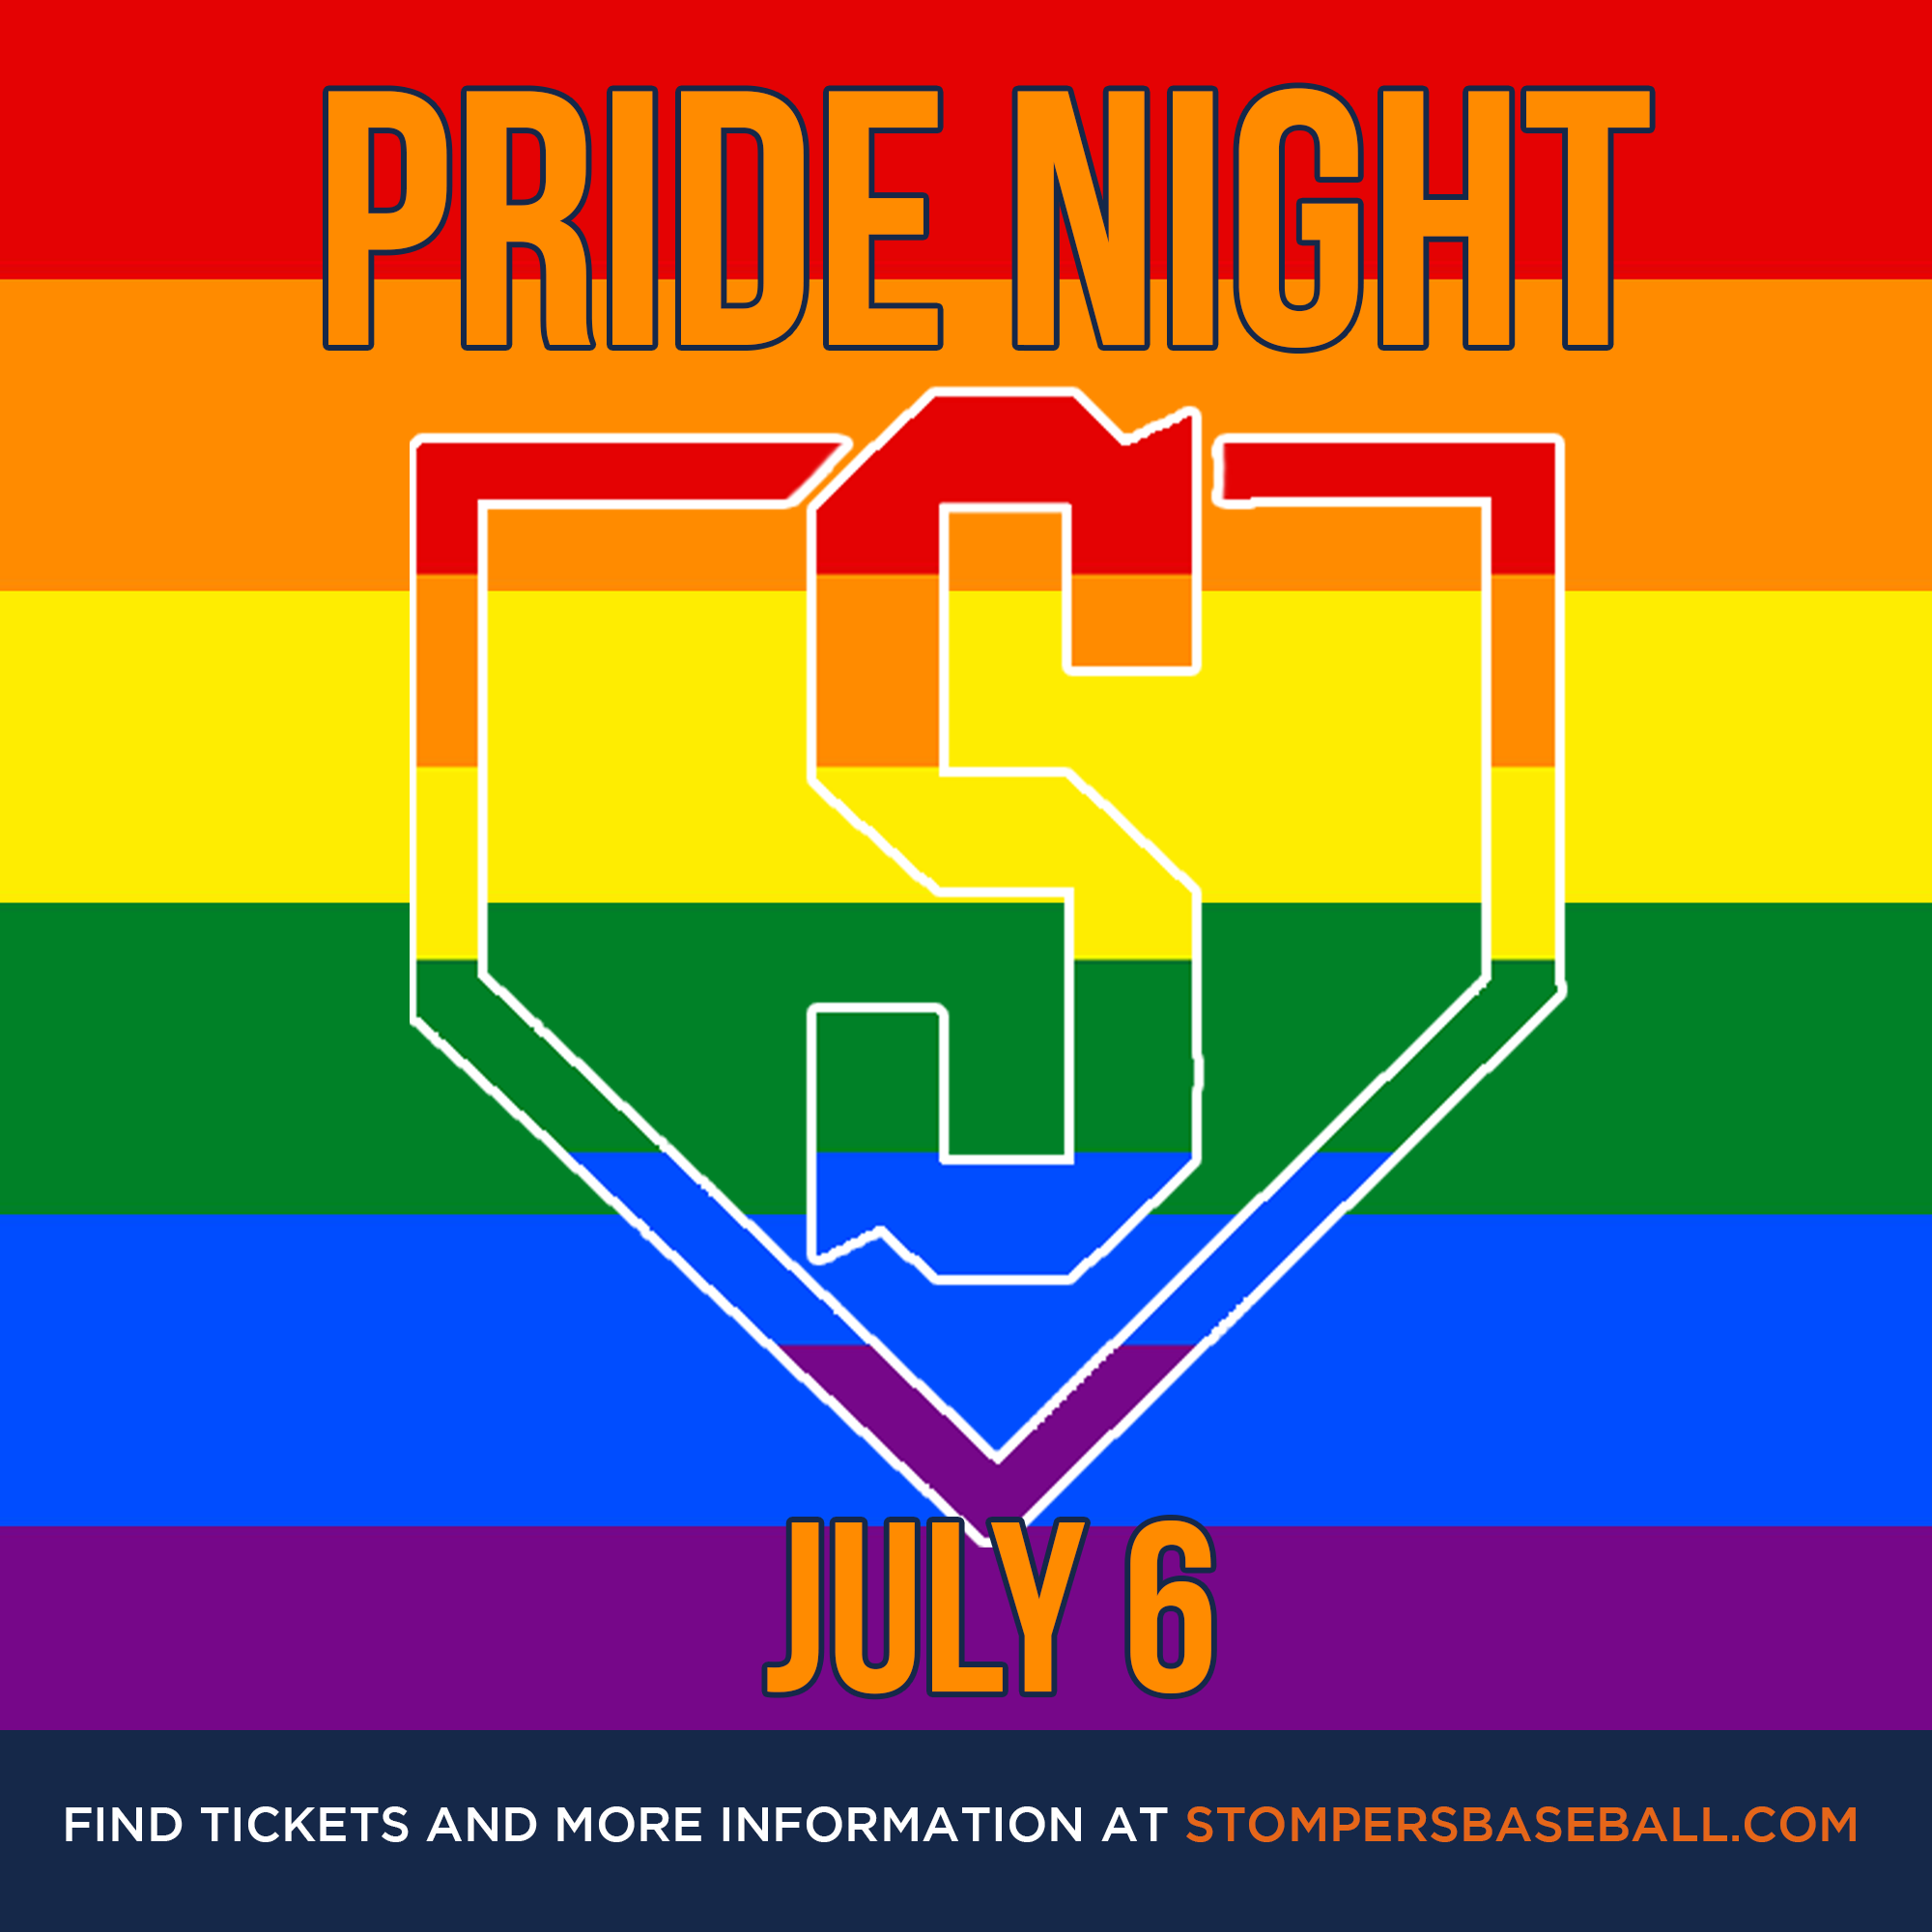 July 6: Pride Night - Come out and show your support for the LGBTQIA+ community and cheer on the Stompers at our fifth annual Pride Night at the ballpark!